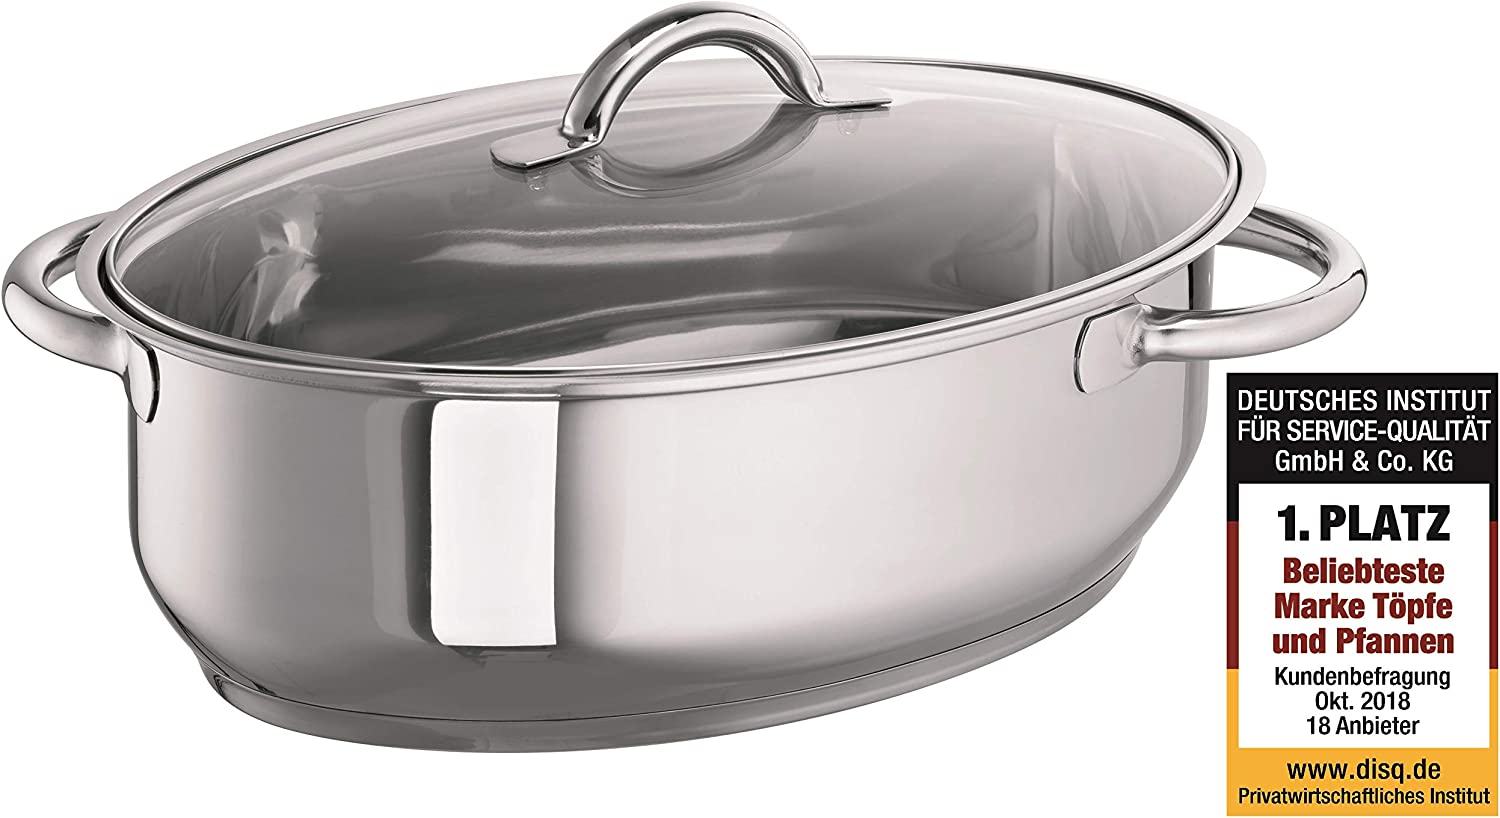 Schulte-Ufer Inexpensive 6768-38 Full-View Roasting Tin 38 All items free shipping for 9.00 L cm Ind